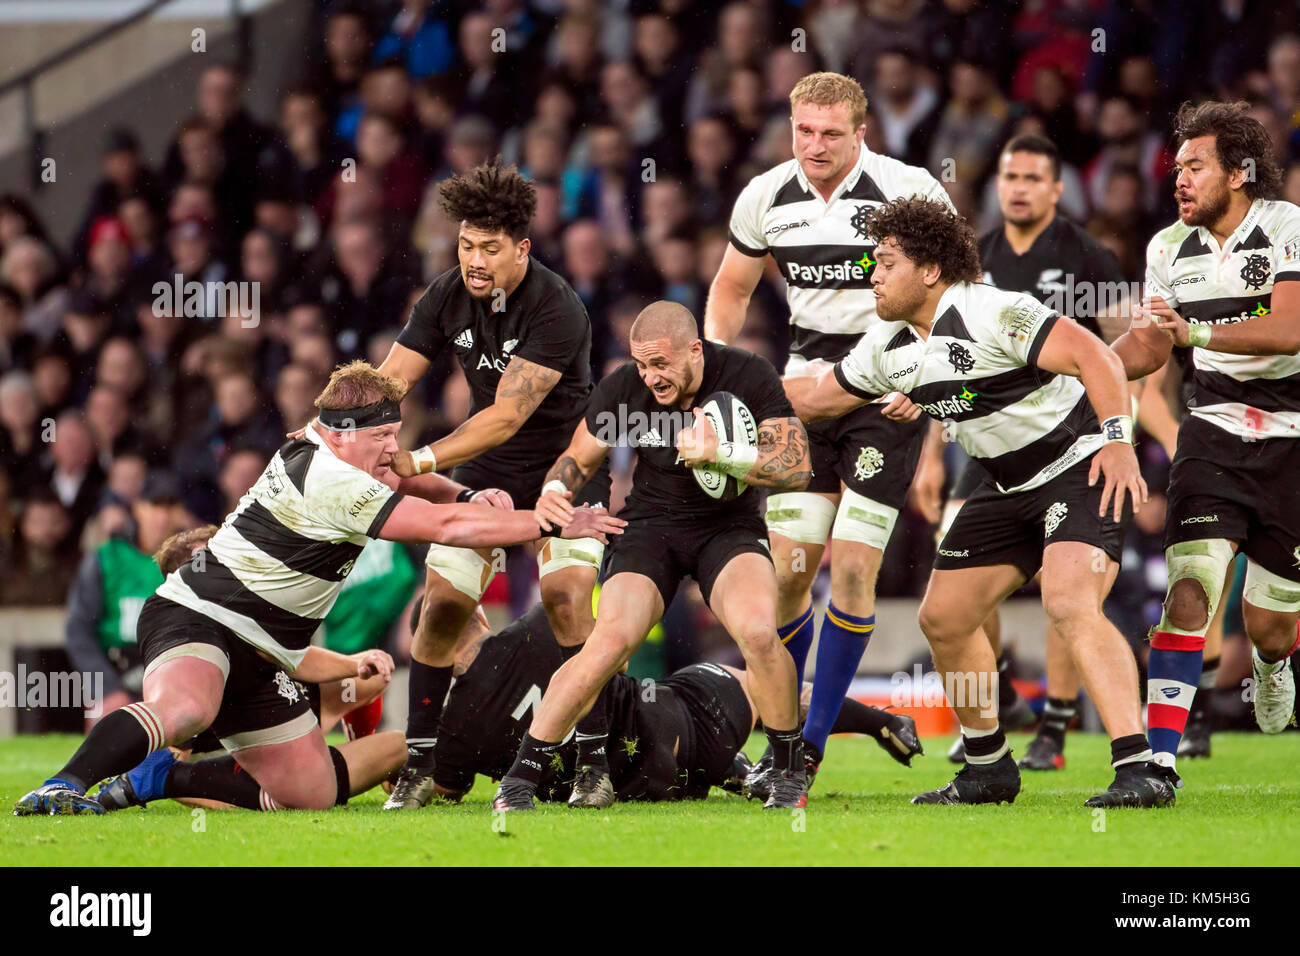 New Zealand's TJ Perenara (All Blacks, 9) attempting to defend the ball against Jacques van Rooyen (Barbarians, - Stock Image